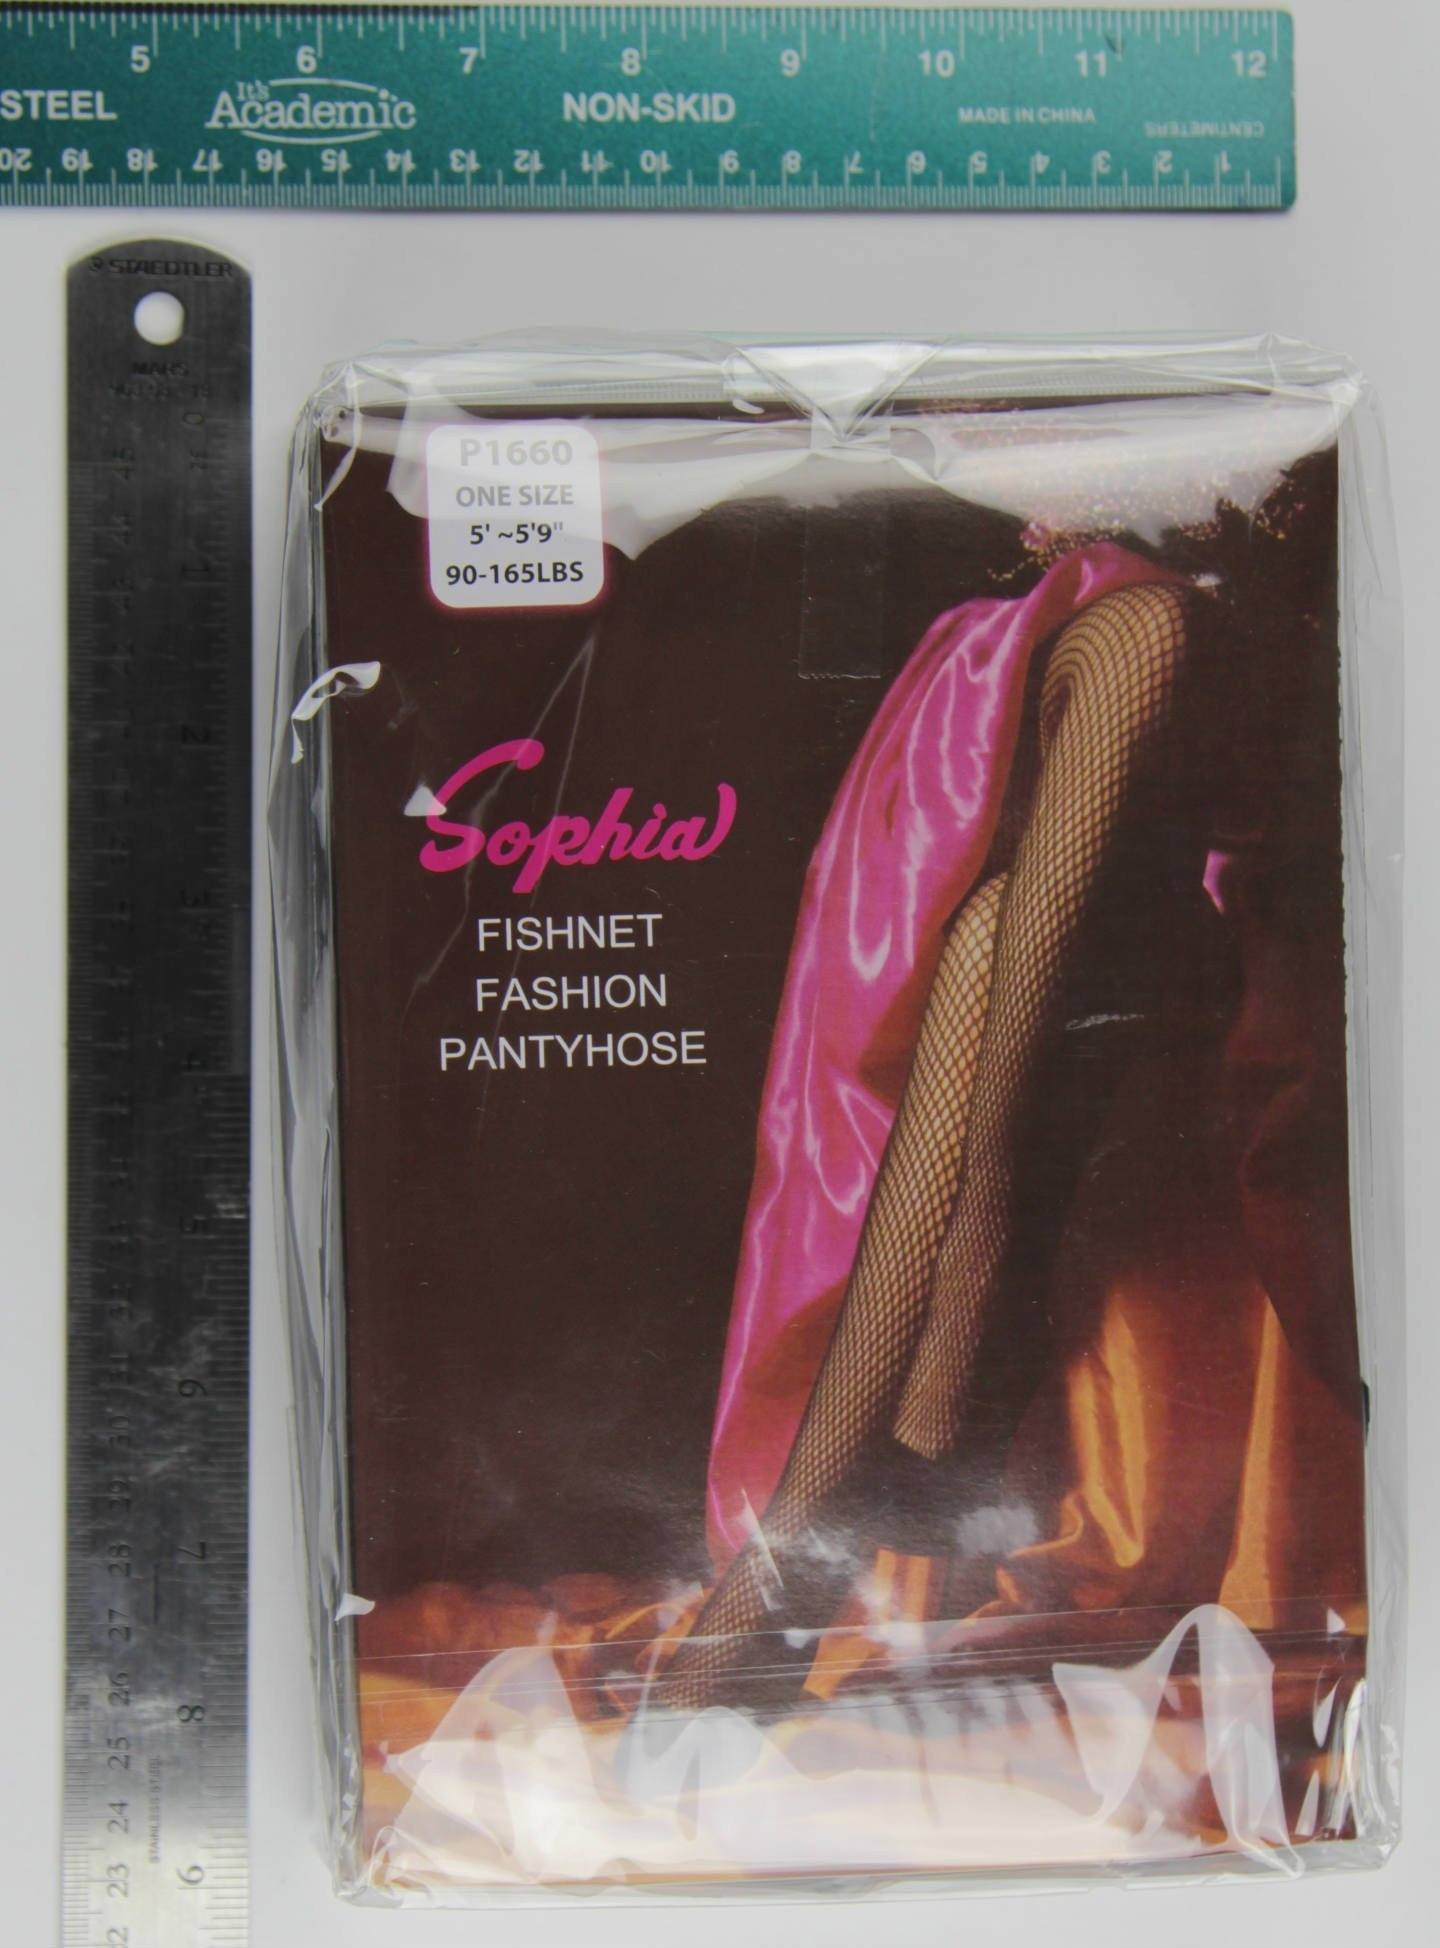 #P1660 Sophia Fishnet Pantyhose One Size (6Pc)